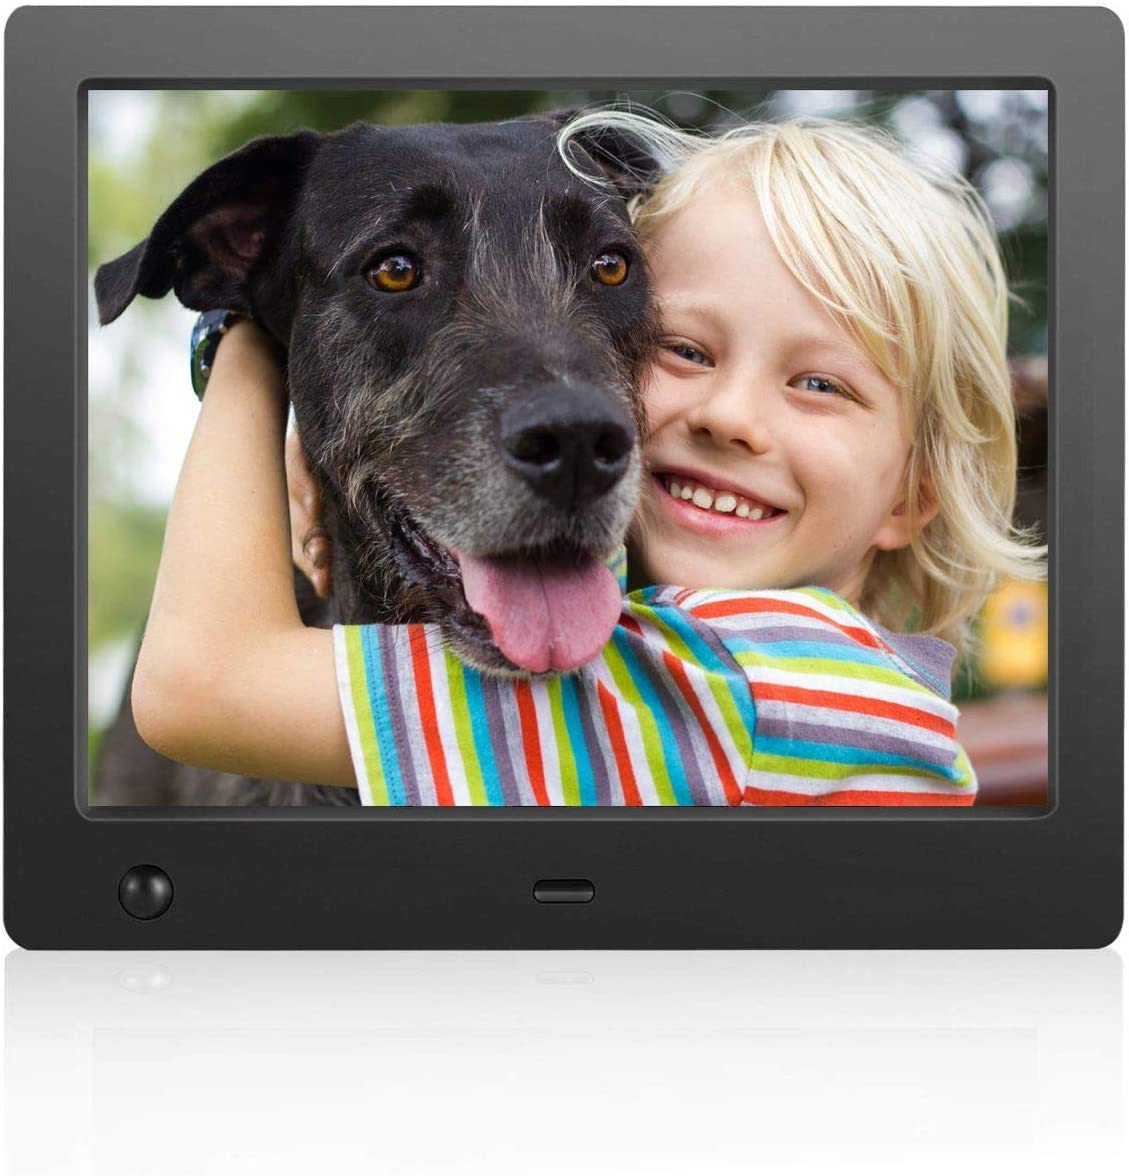 Digital Photo Frame 8 inch – Electronic Photo Frame with Slideshow HD IPS Display Picture Frame with Motion Sensor Video Background Music Calendar Clock Gifts for Keeping Memory by FLYAMAPIRIT